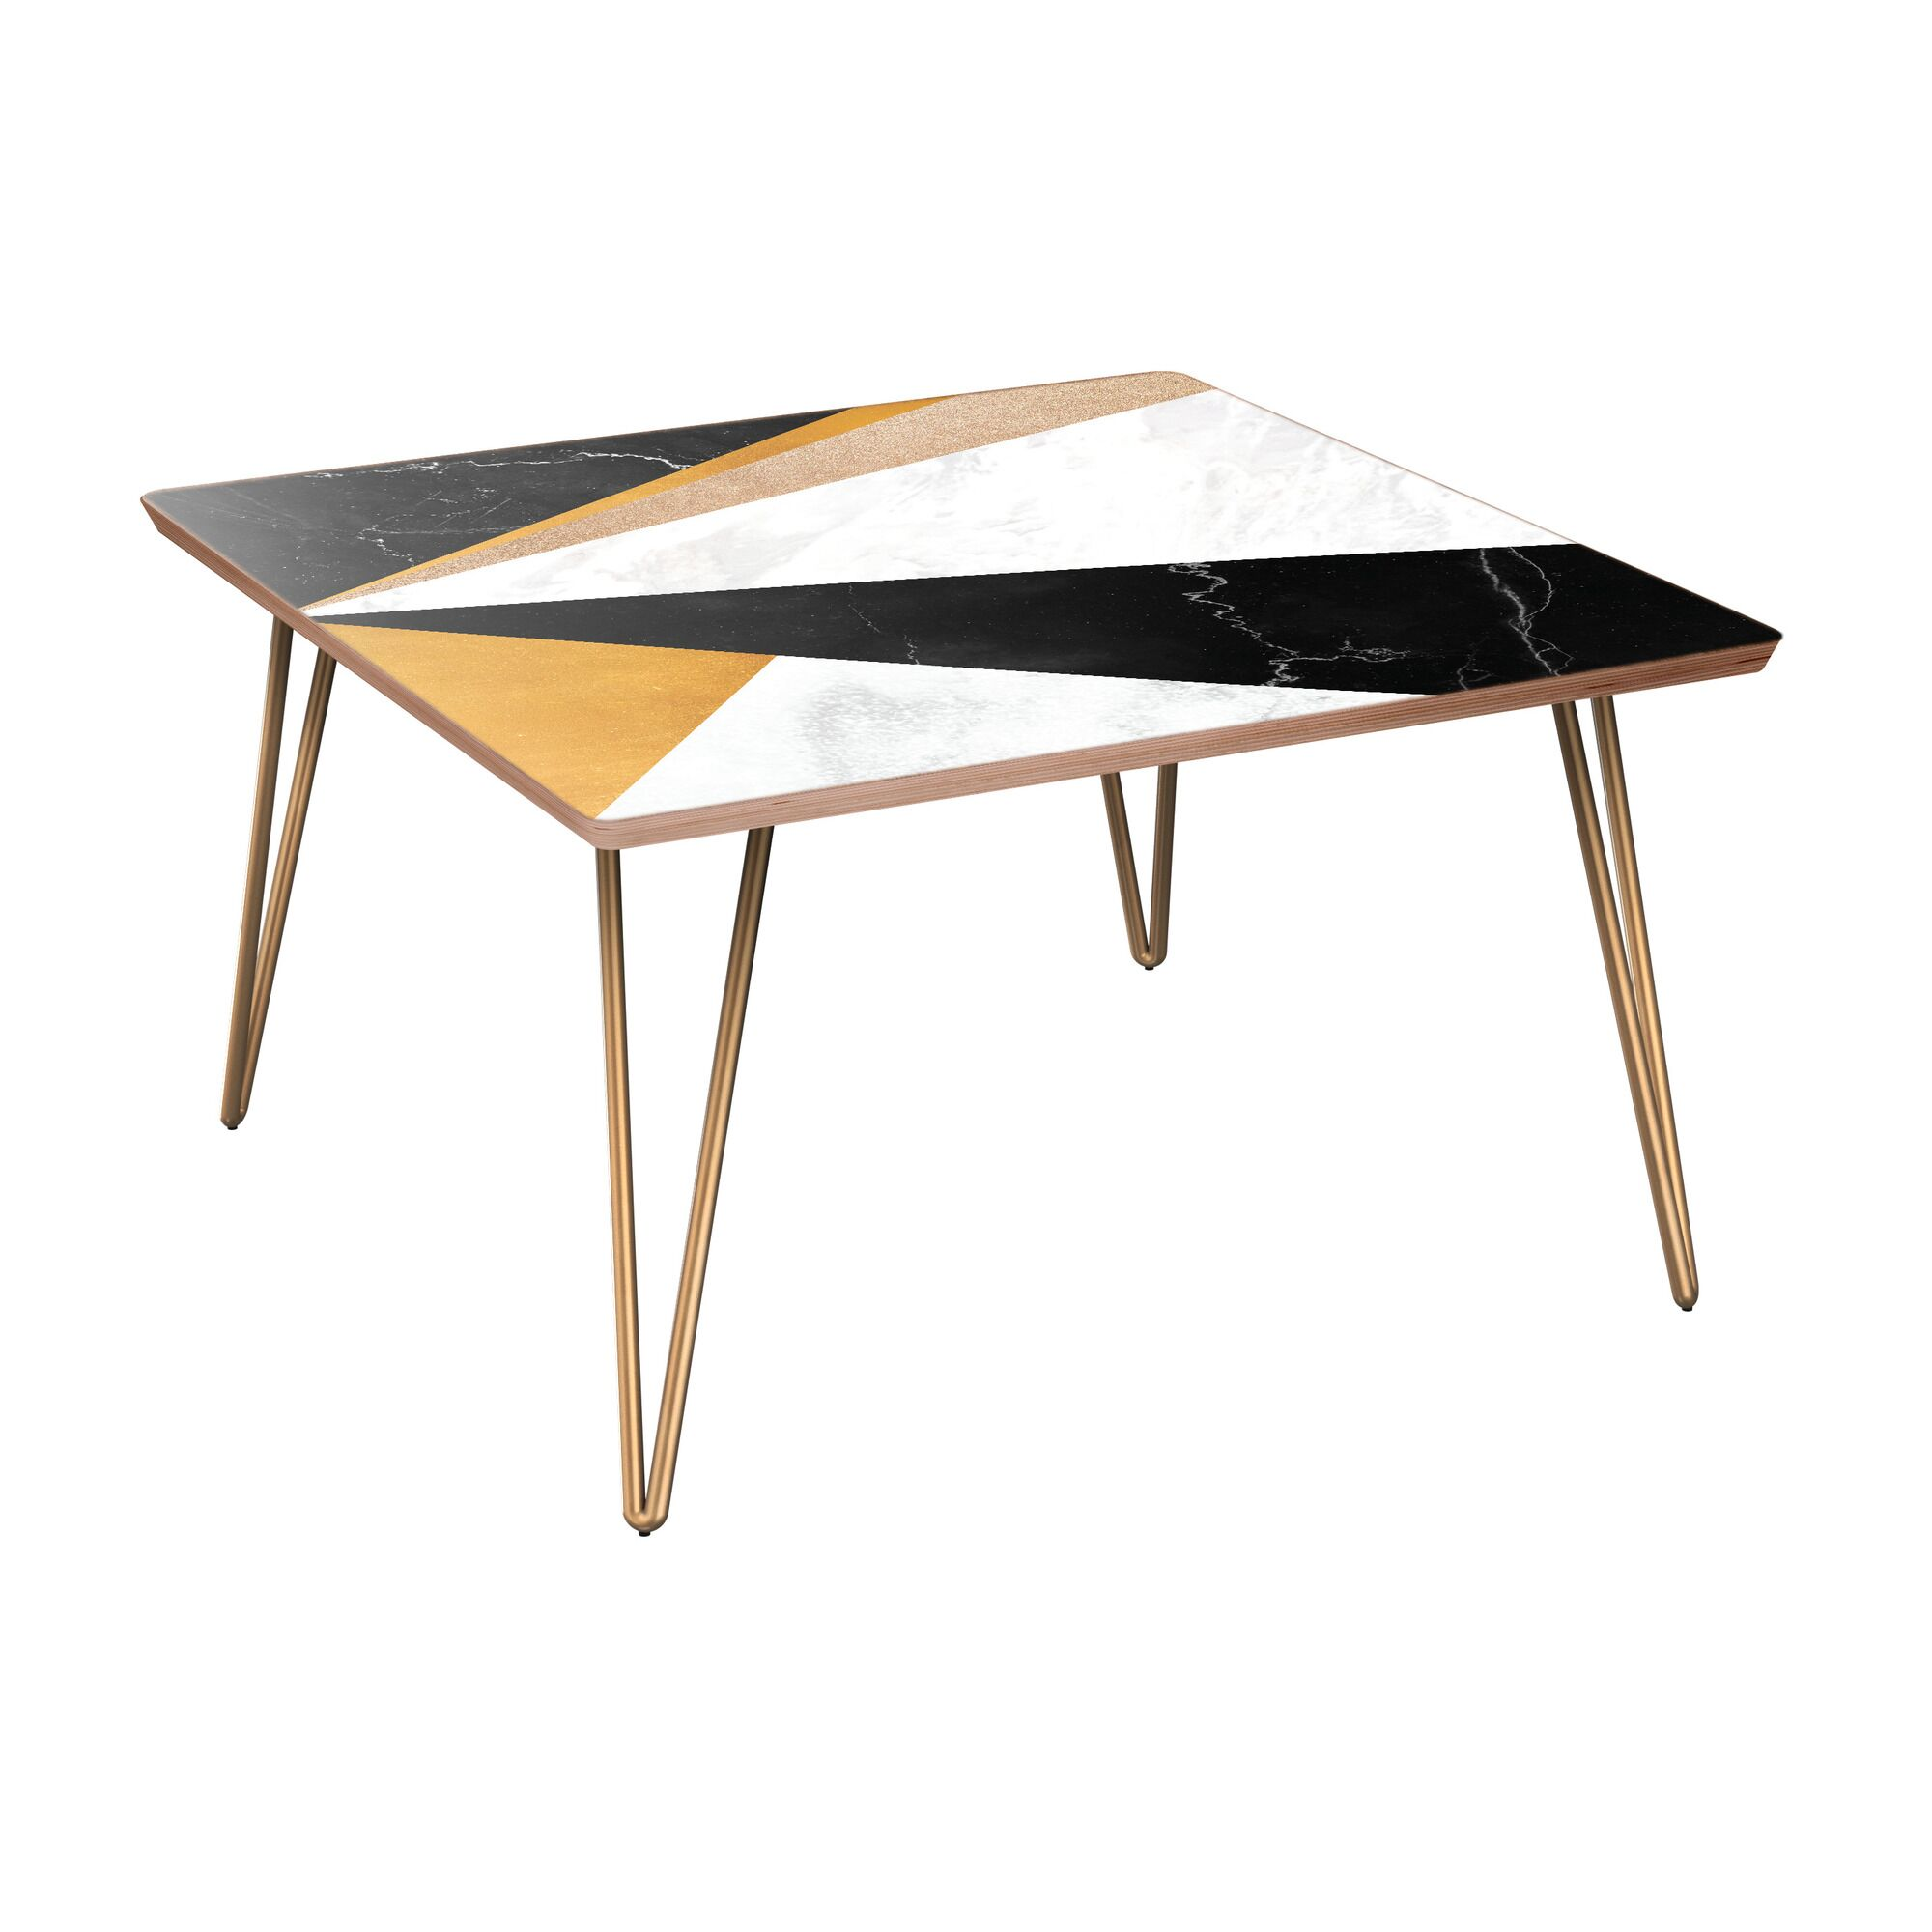 Goudy Coffee Table Table Base Color: Brass, Table Top Color: Walnut